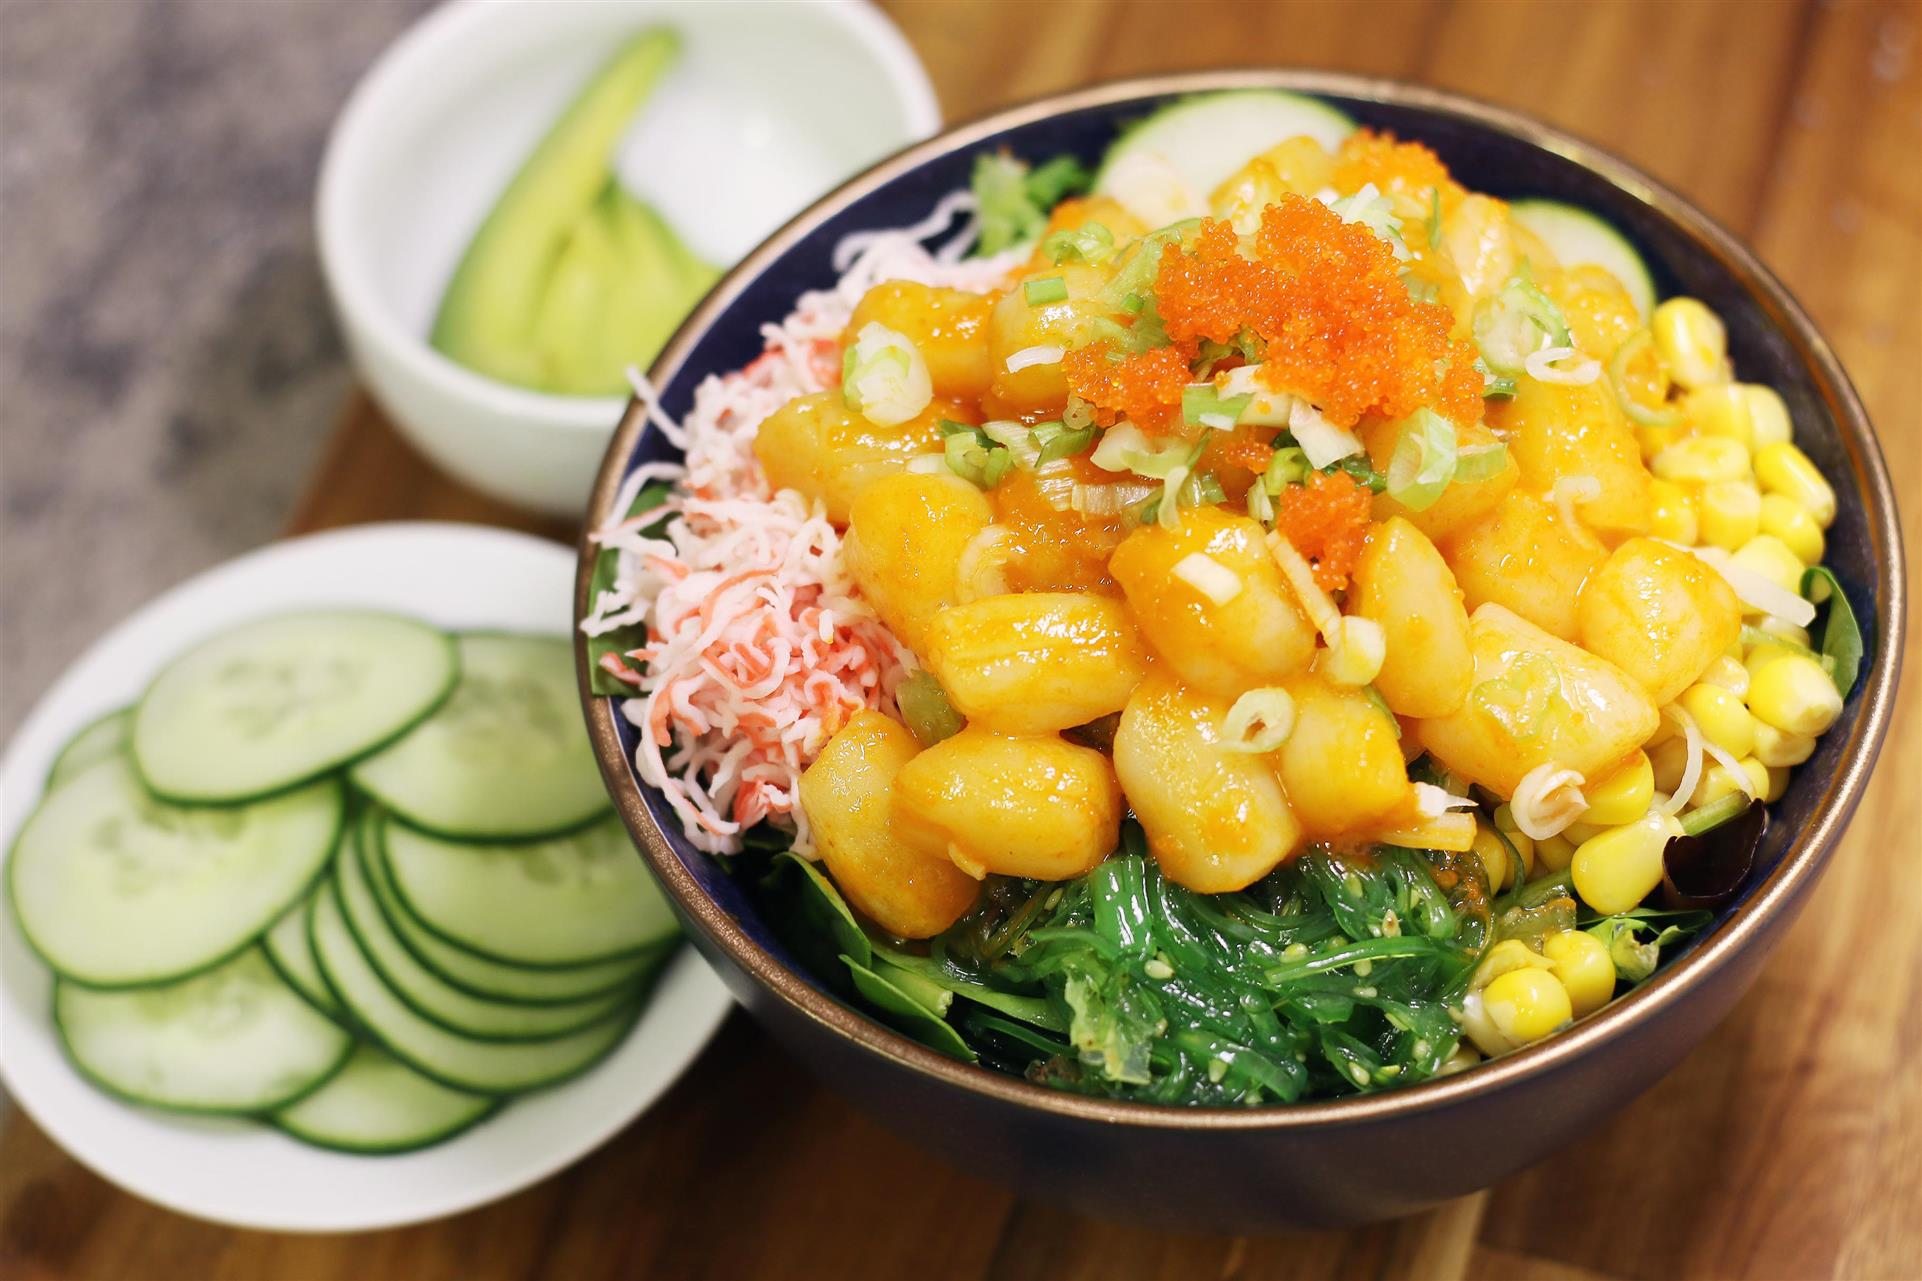 vegetable poke bowl with side plates of sliced cucumbers and sliced avocados